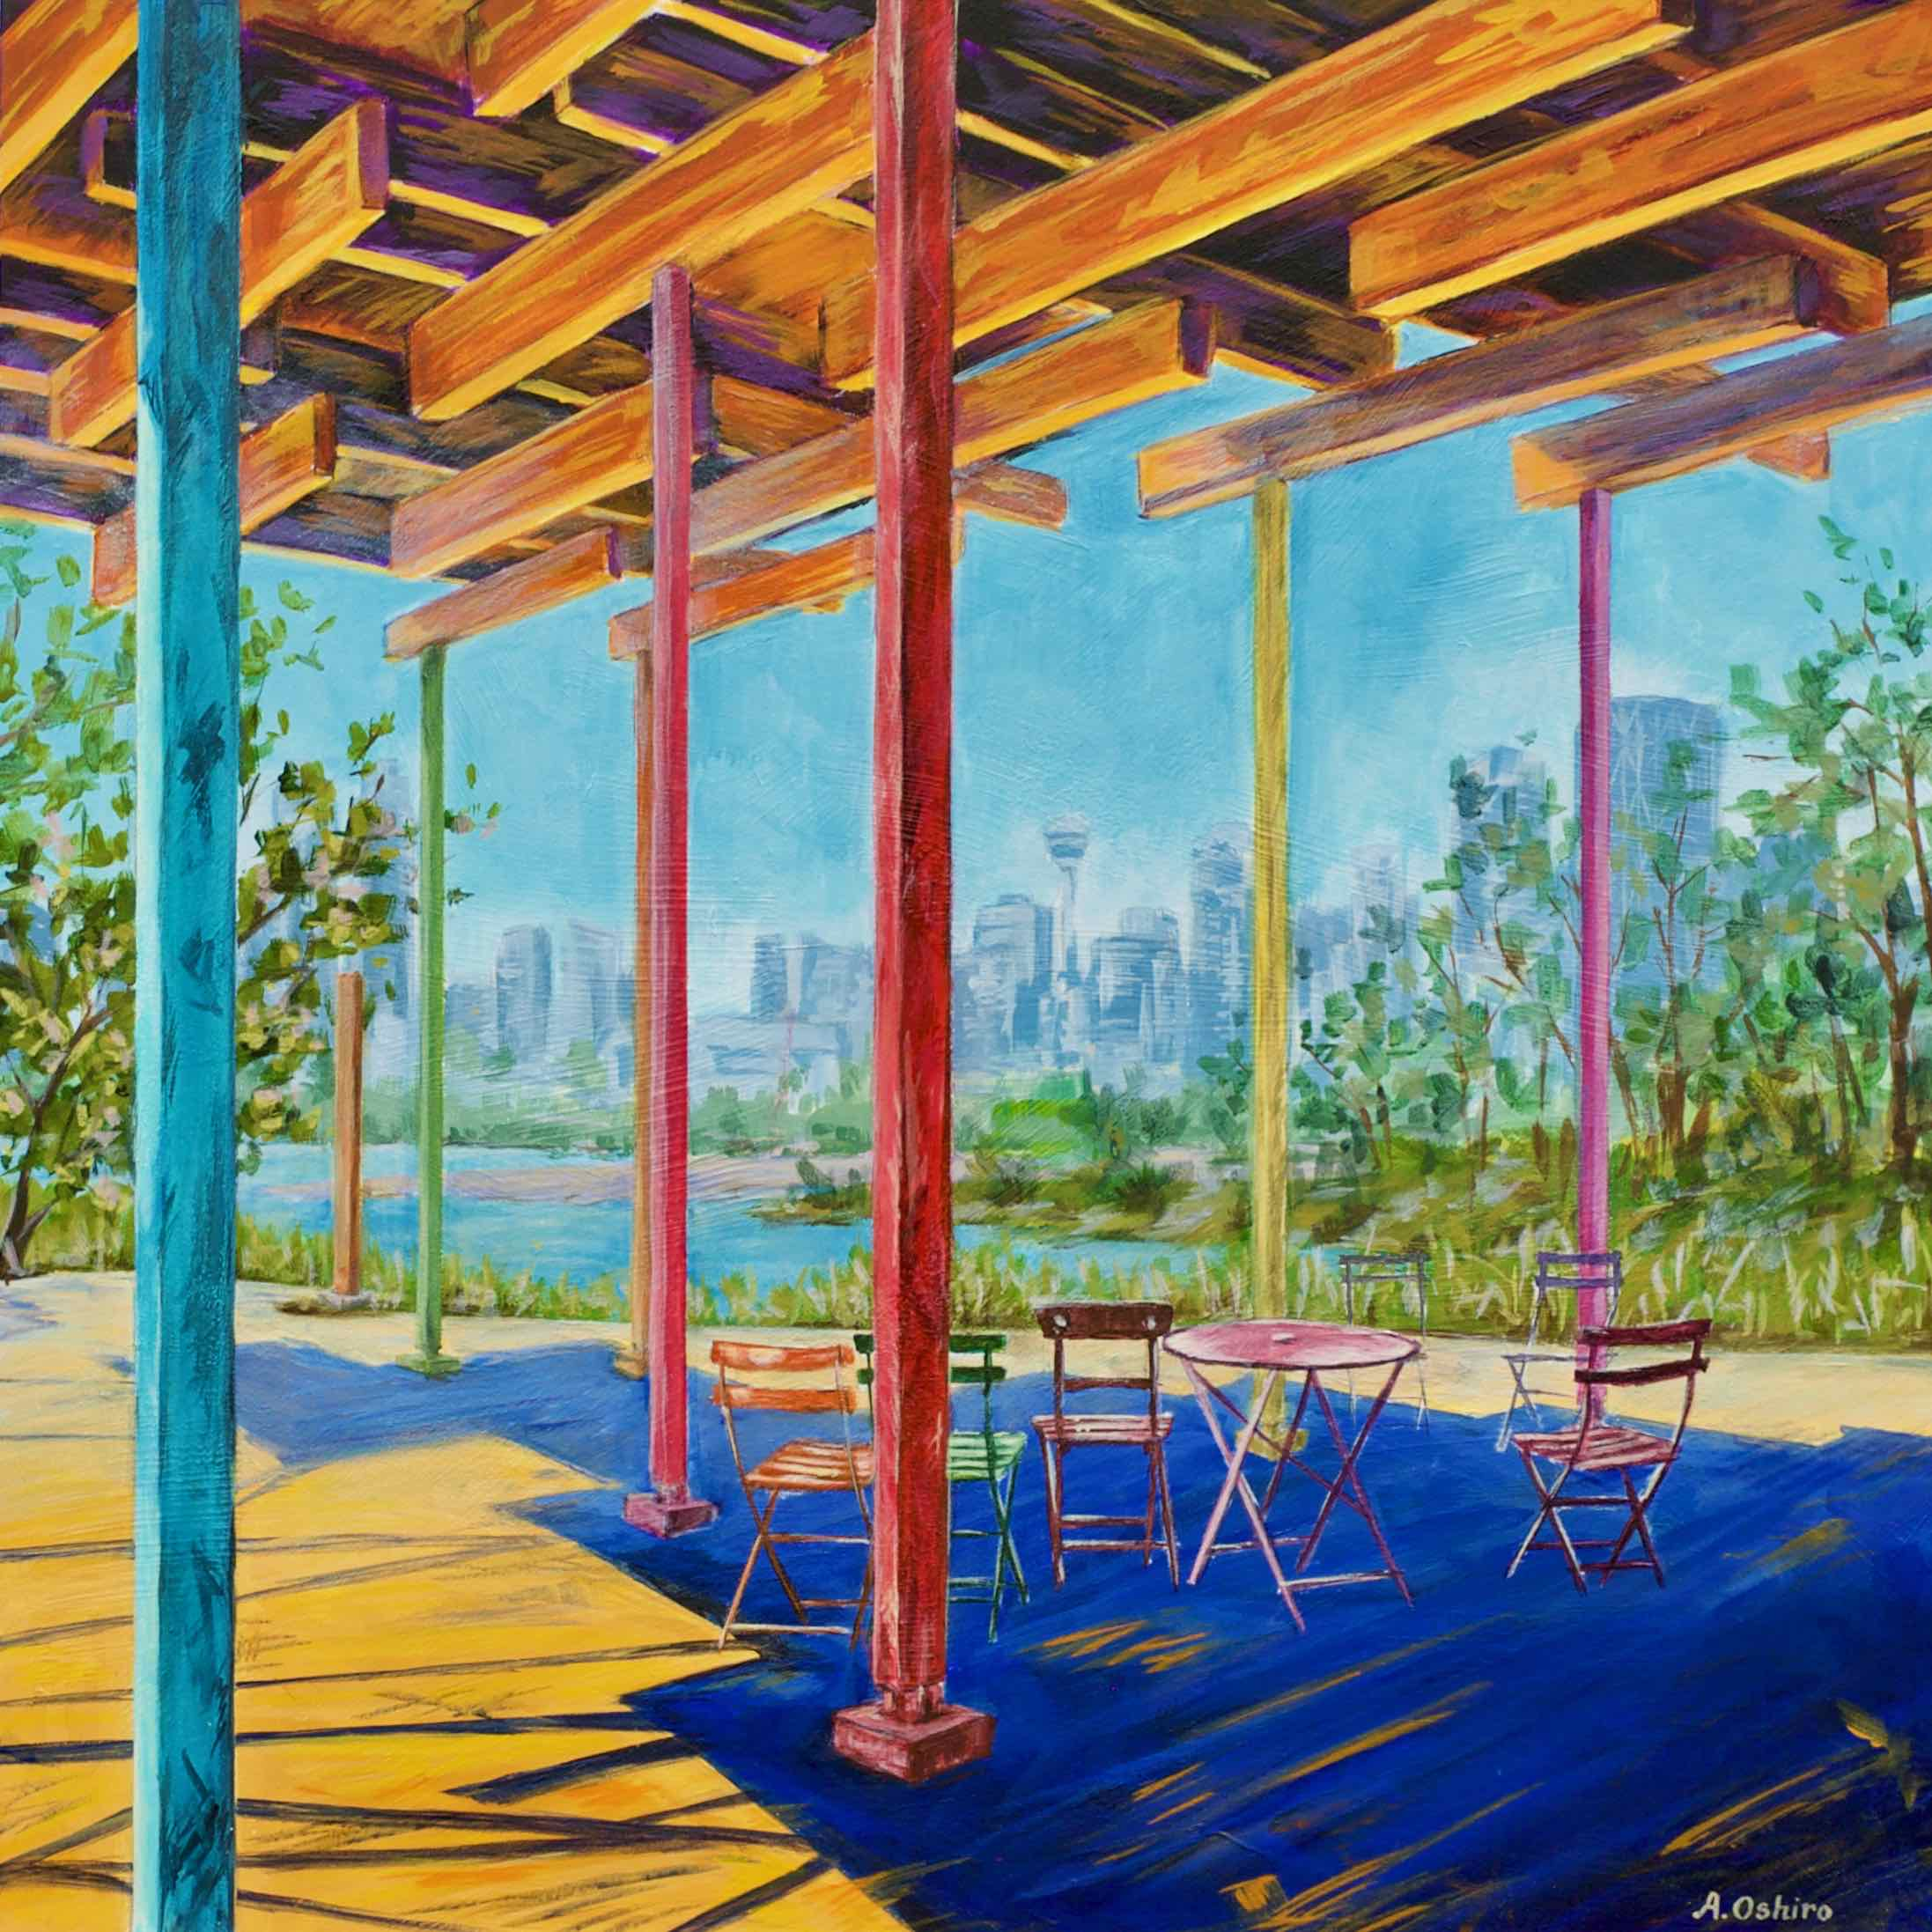 """- No. 9 – '12th St. and Zoo Rd. NE'20x20"""" Acrylic on Cradled Birch PanelSt. Patrick's Island is one of Calgary's oldest public parks. Development of this greenspace began in the 1890's. It recently underwent extensive redevelopment and re-opened to the public in 2015. St. Patrick's Island is a great place to picnic with the family and children are able to enjoy """"The Playmound's"""" playground. This is the view from """"Confluence Plaza"""" which overlooks the Bow River and downtown Calgary."""